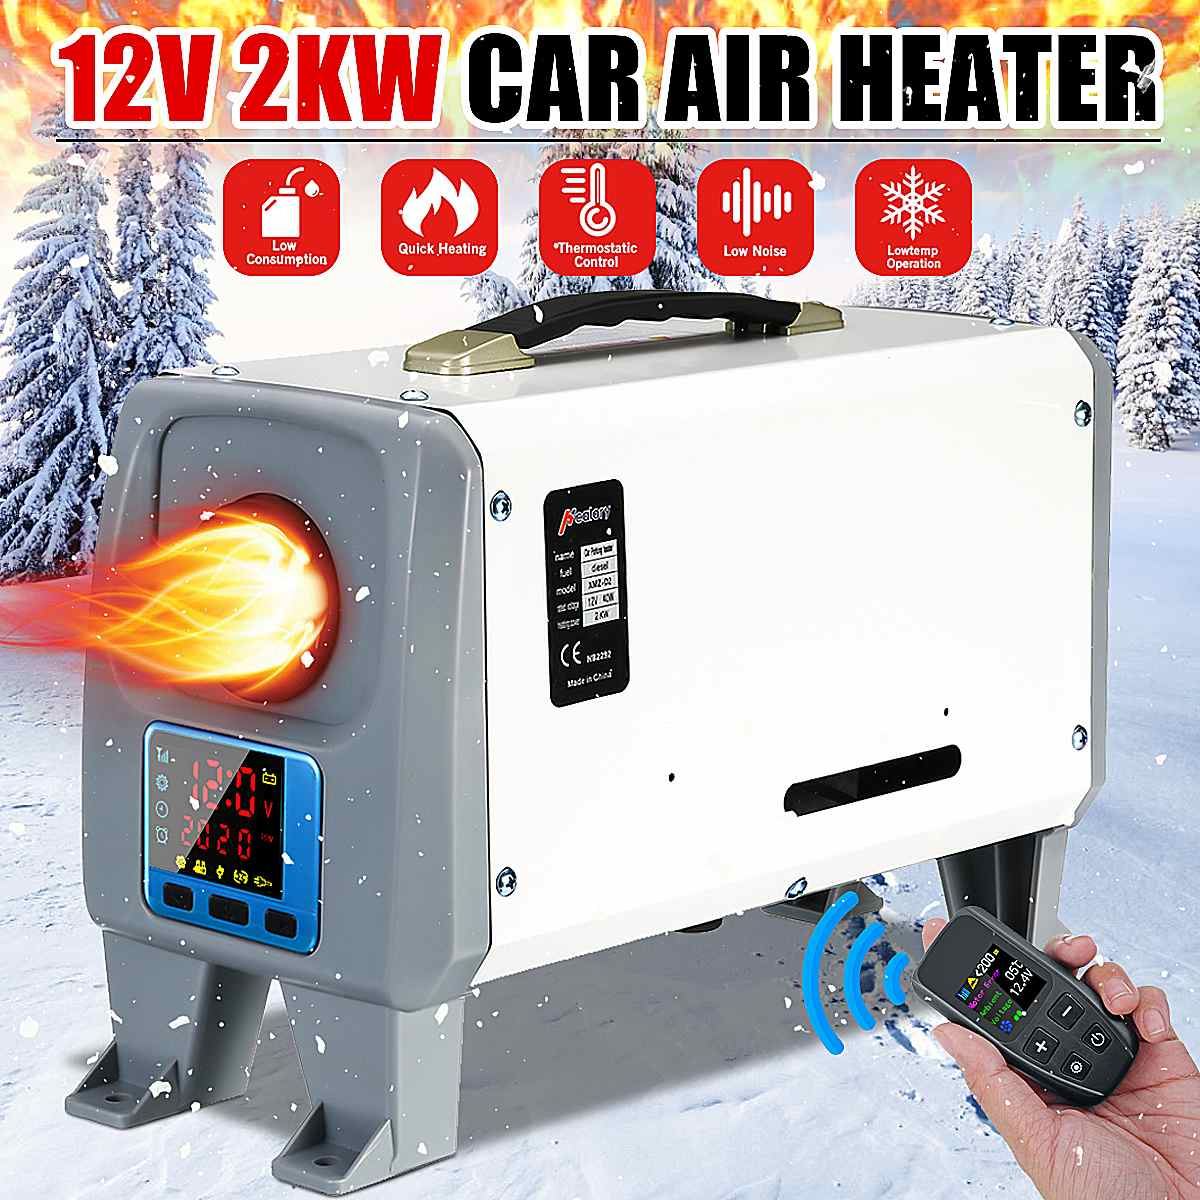 Car Heater 2KW 12V Diesel Air Heater Fan New Black LCD Switch+ Remote Control Integrated Machine For Van Boat Bus RV